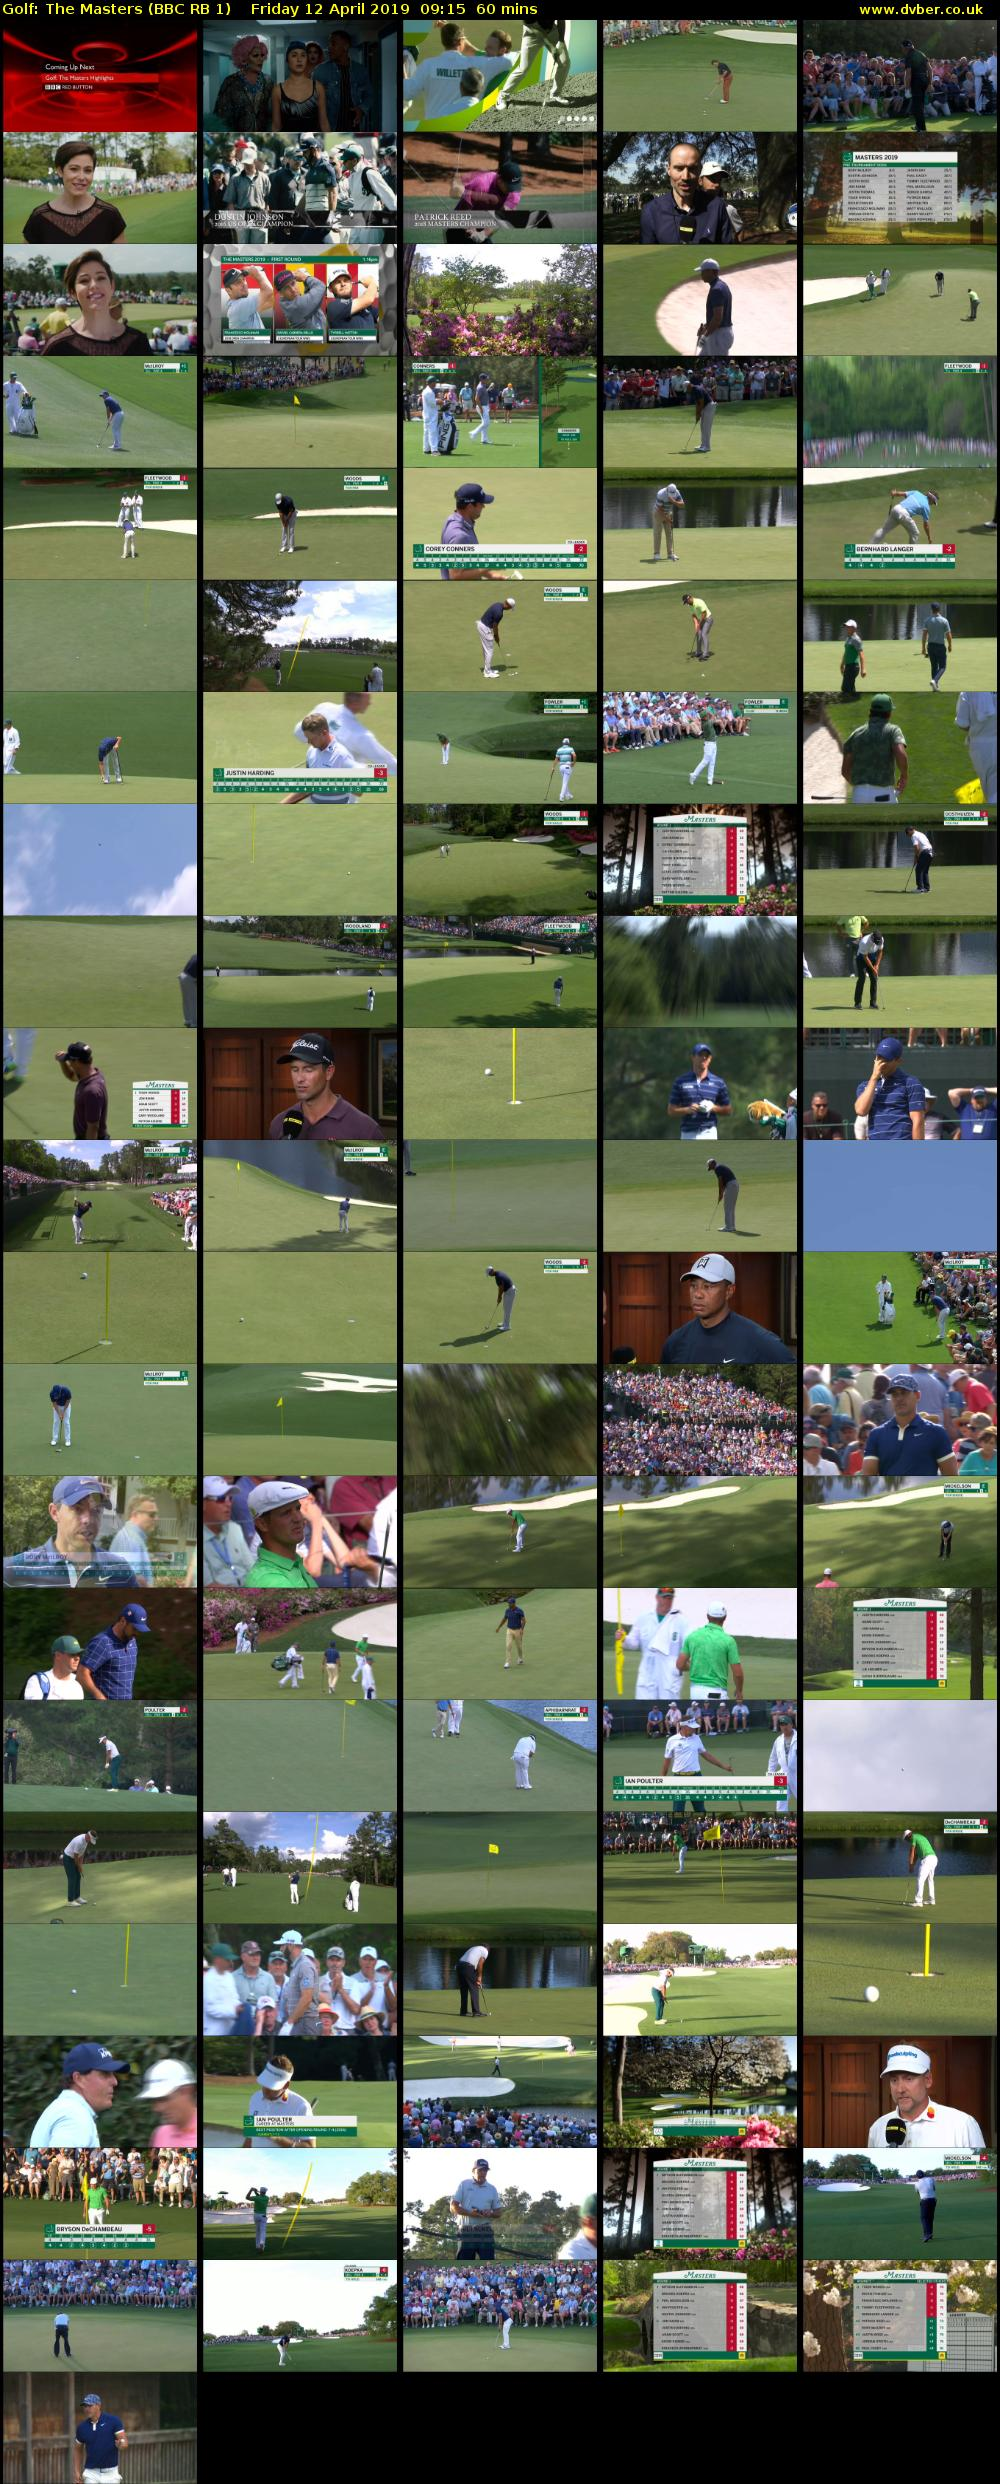 Golf: The Masters (BBC RB 1) Friday 12 April 2019 09:15 - 10:15